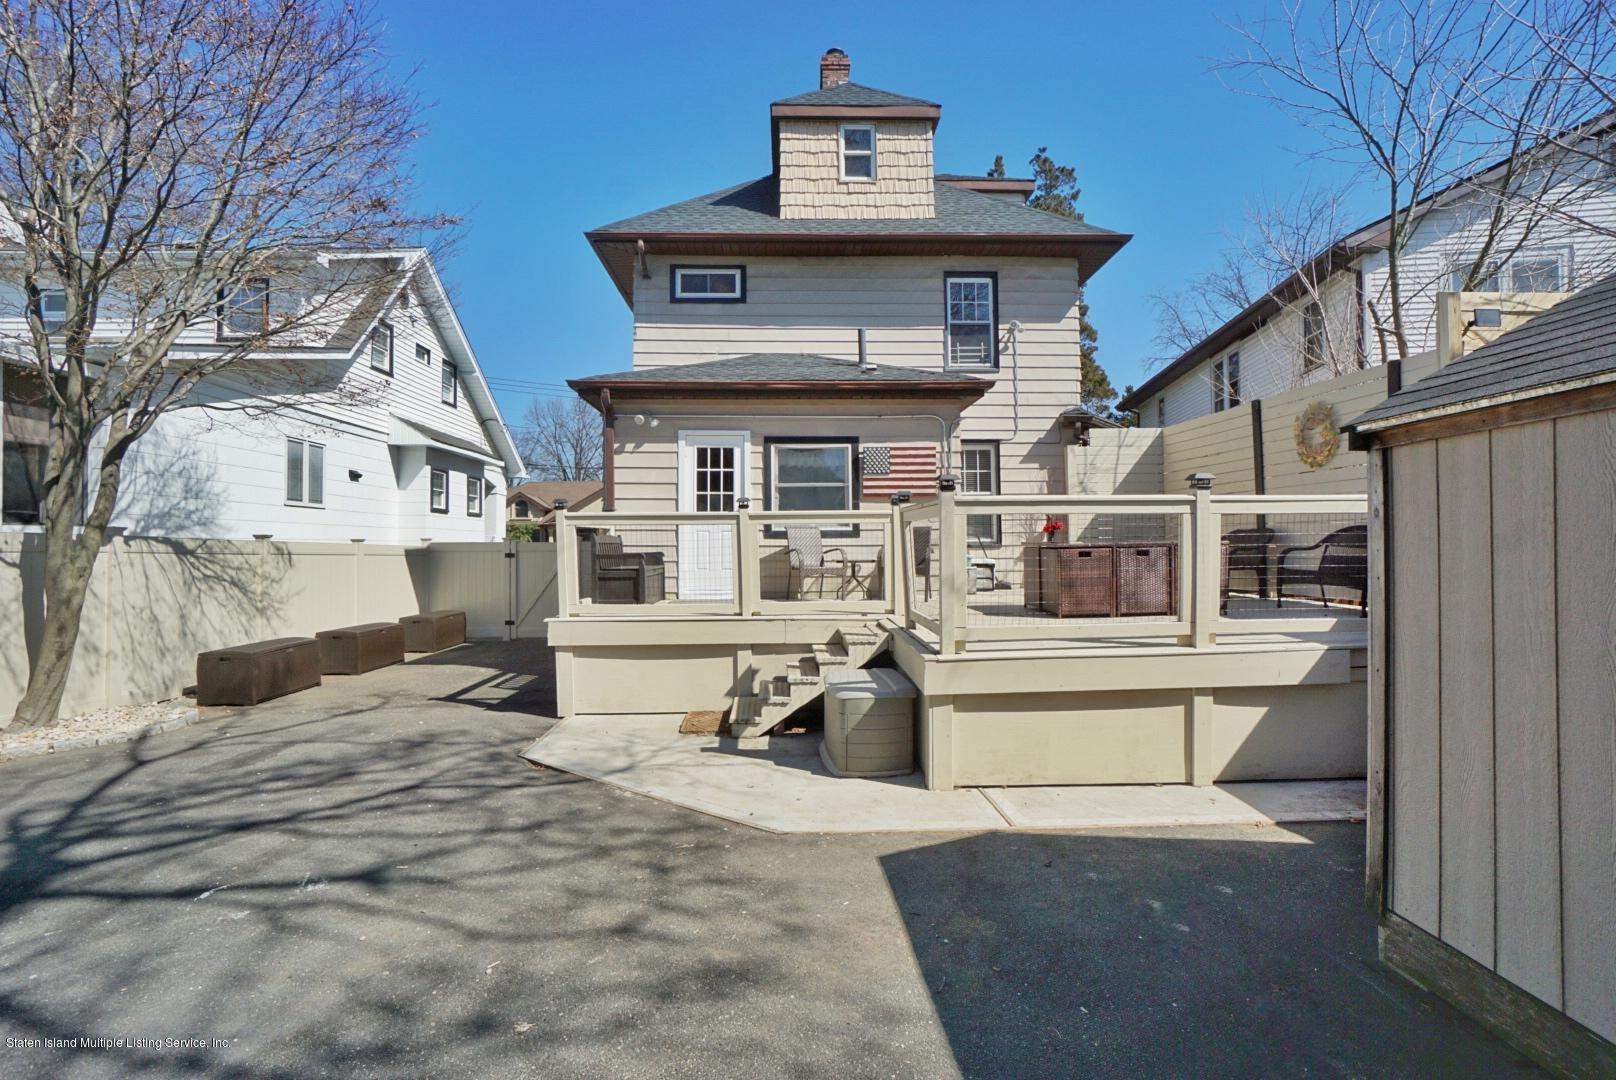 Single Family - Detached 92 Steele Avenue  Staten Island, NY 10306, MLS-1136567-12